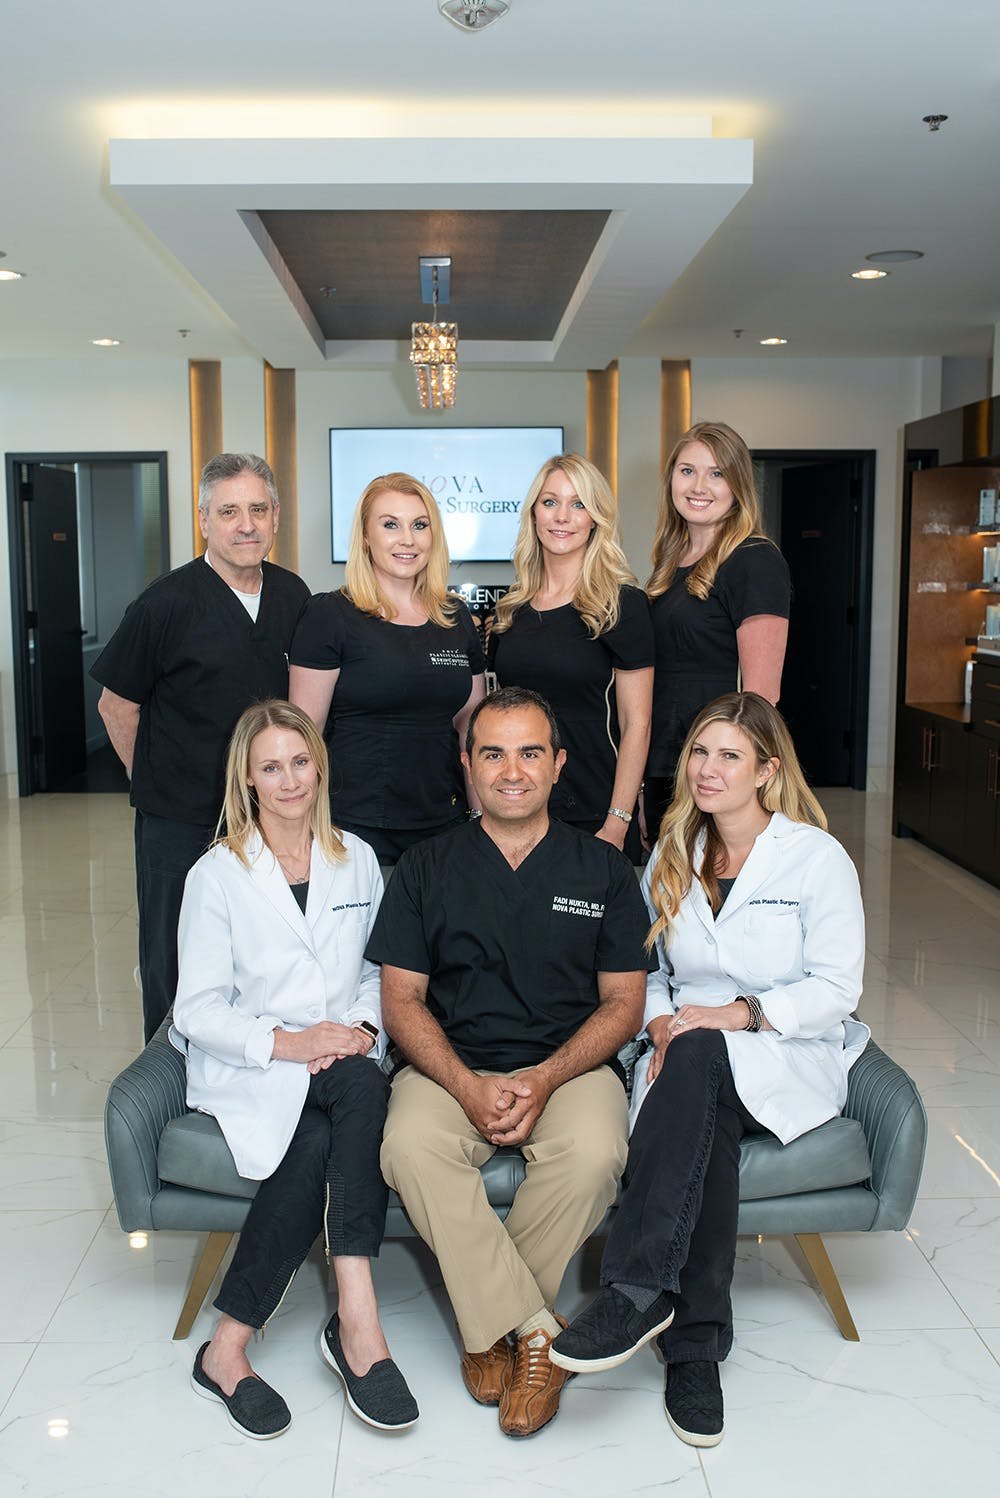 Experienced Aesthetic Nurse Injector at NOVA Plastic Surgery